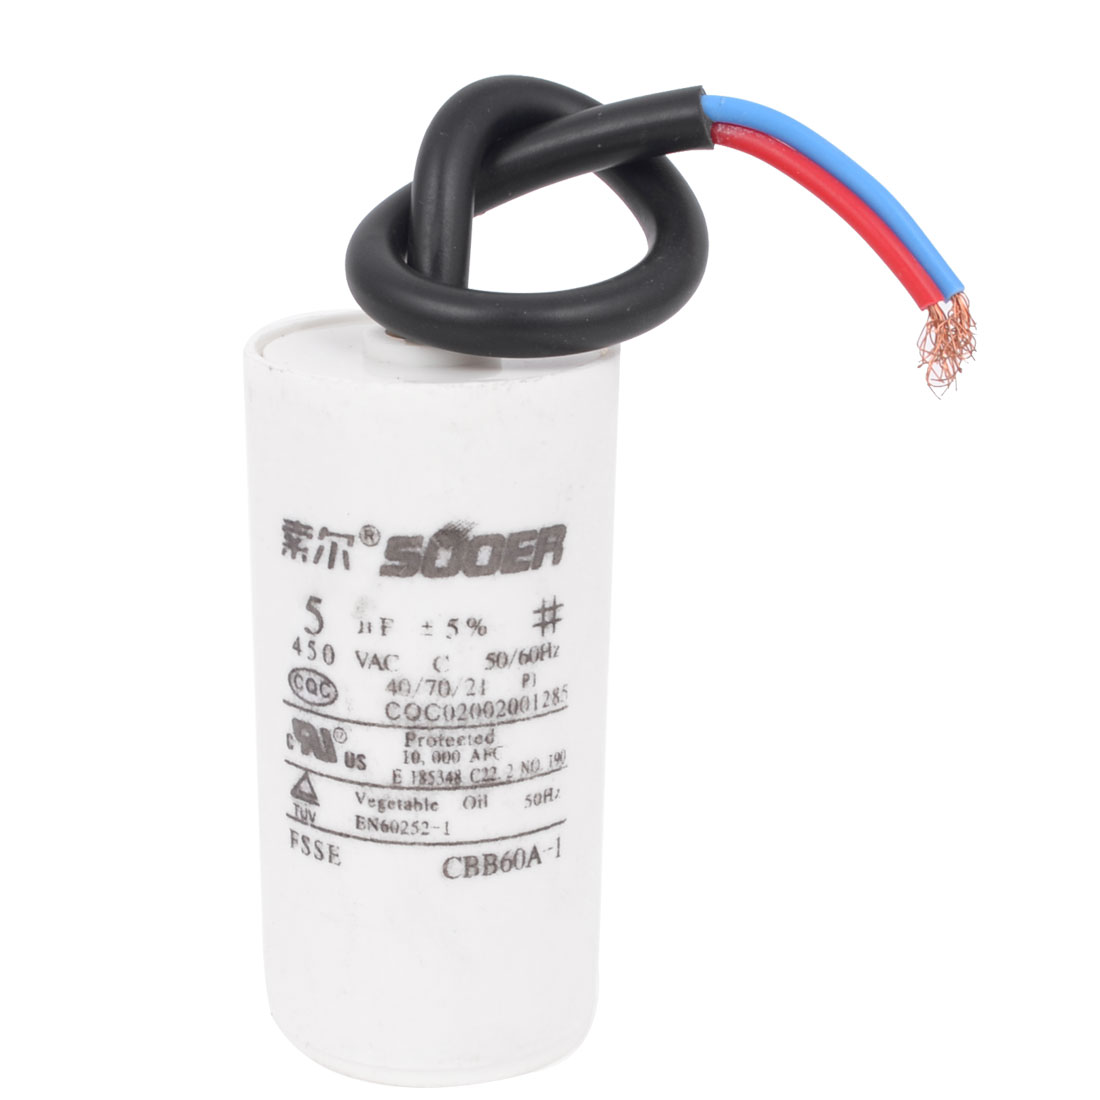 Washing Machine Washer Polypropylene Film Wire Motor Running Capacitor AC 450V 5uF 5% CBB60